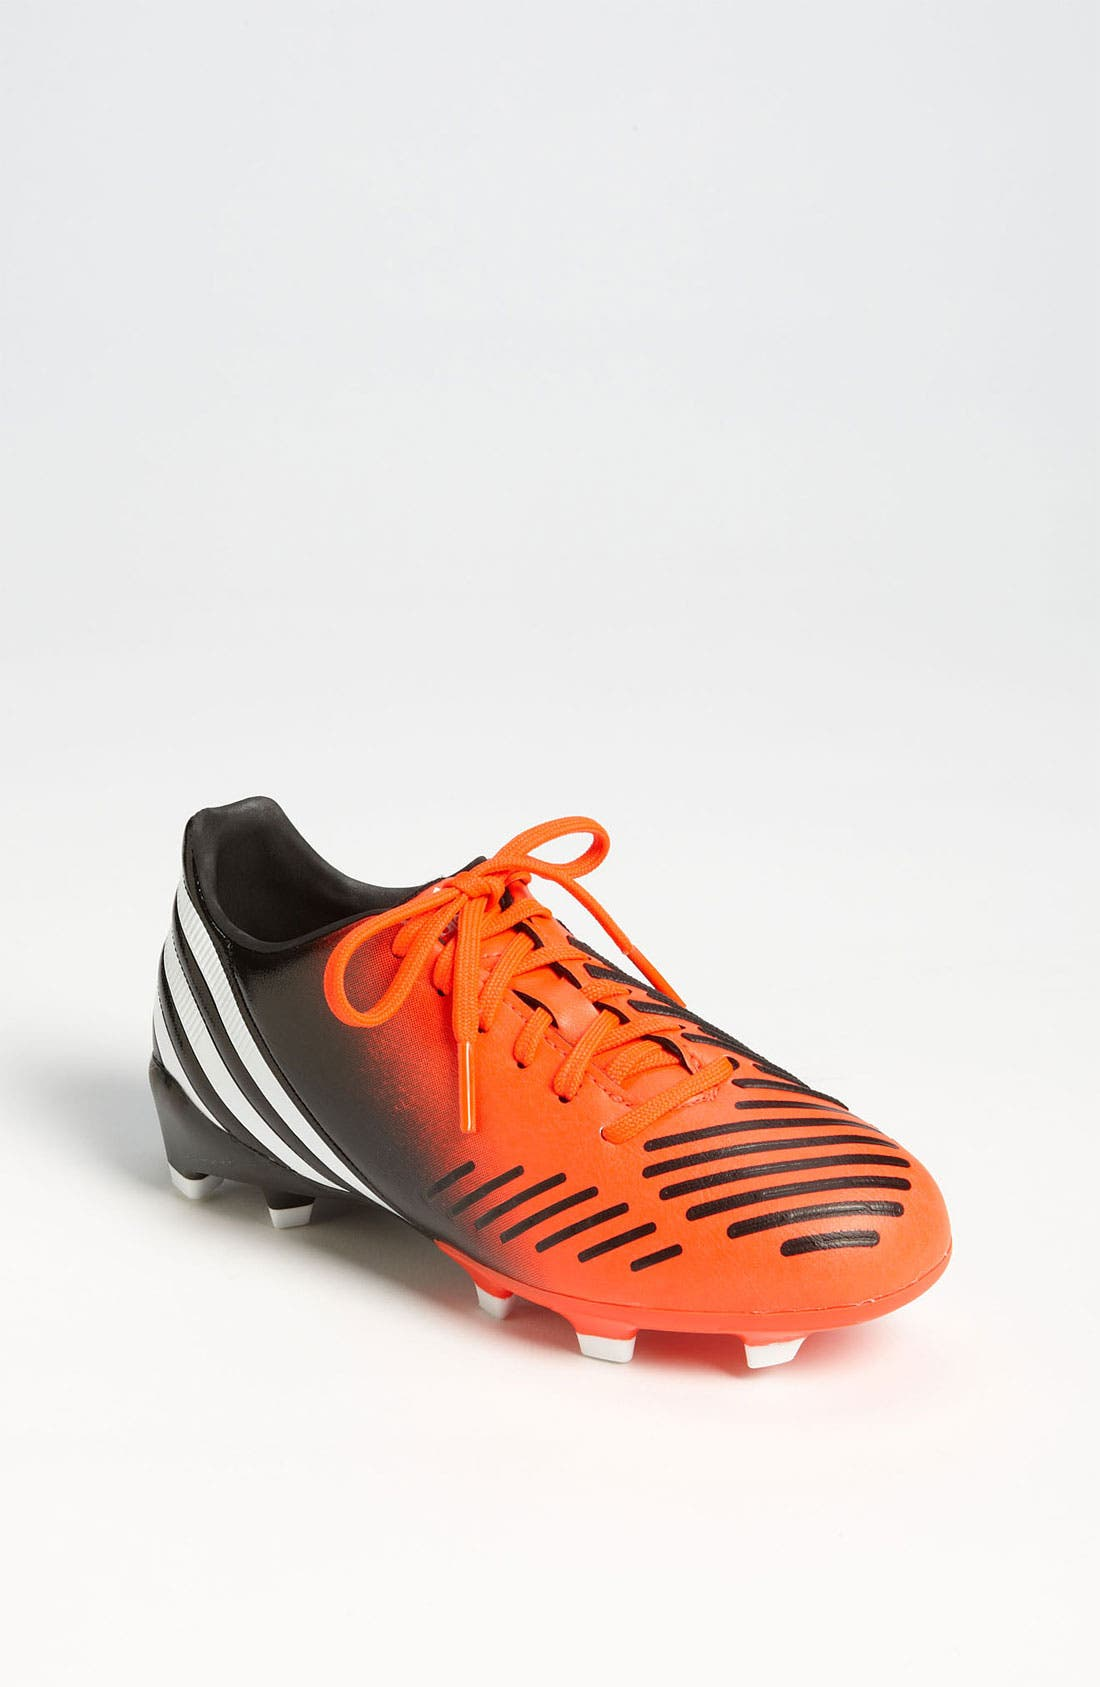 Alternate Image 1 Selected - adidas 'Predator Absolado LX TRX FG' Soccer Cleats (Toddler, Little Kid & Big Kid)